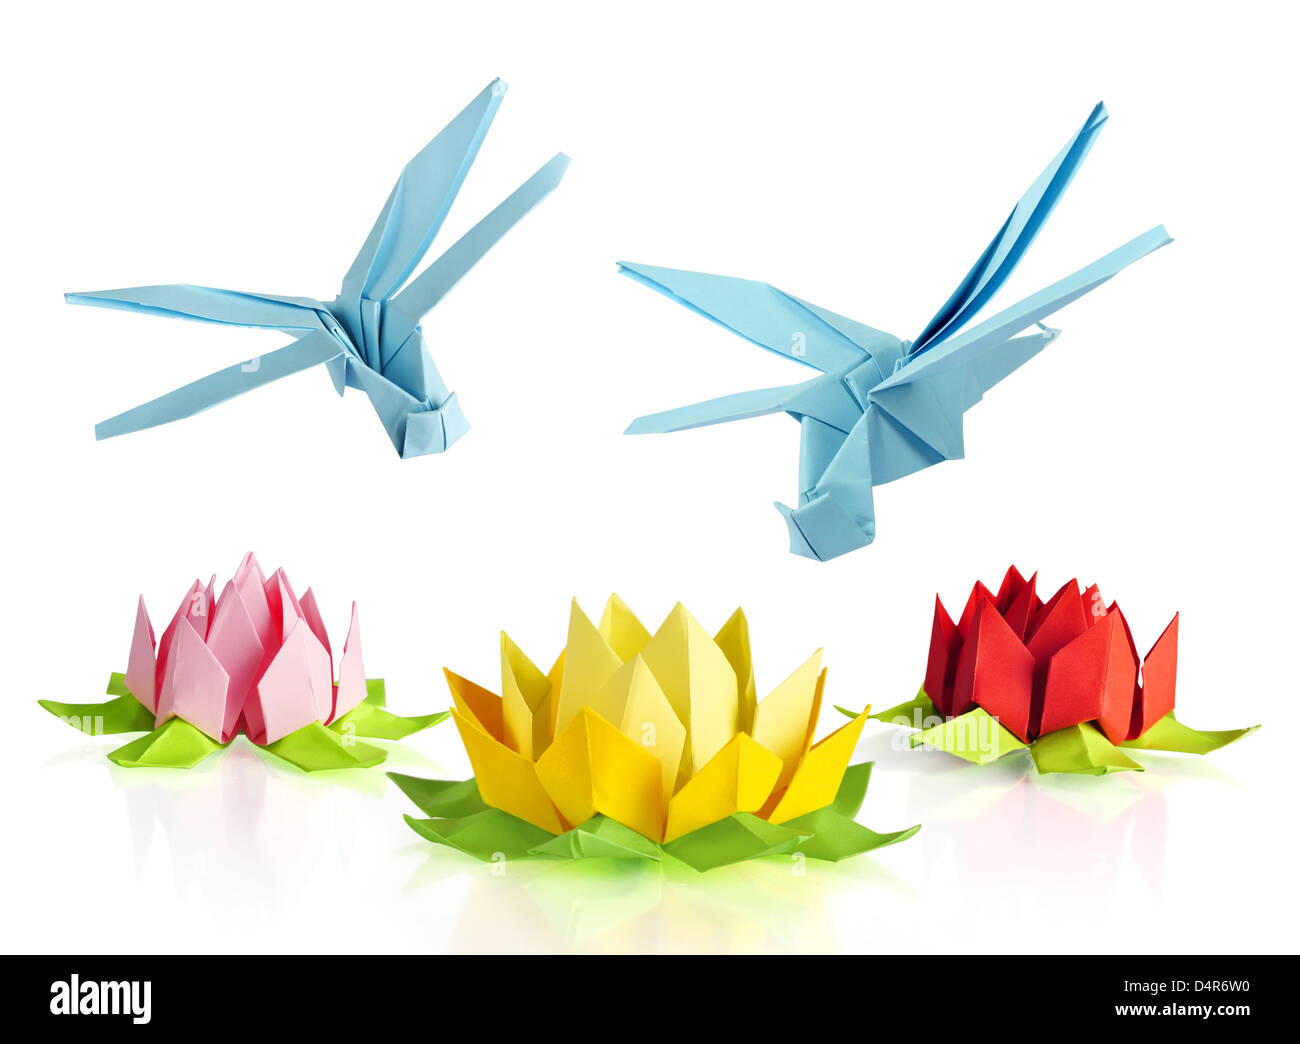 Origami blue dragonfly over flowers lotus over white background origami blue dragonfly over flowers lotus over white background jeuxipadfo Image collections